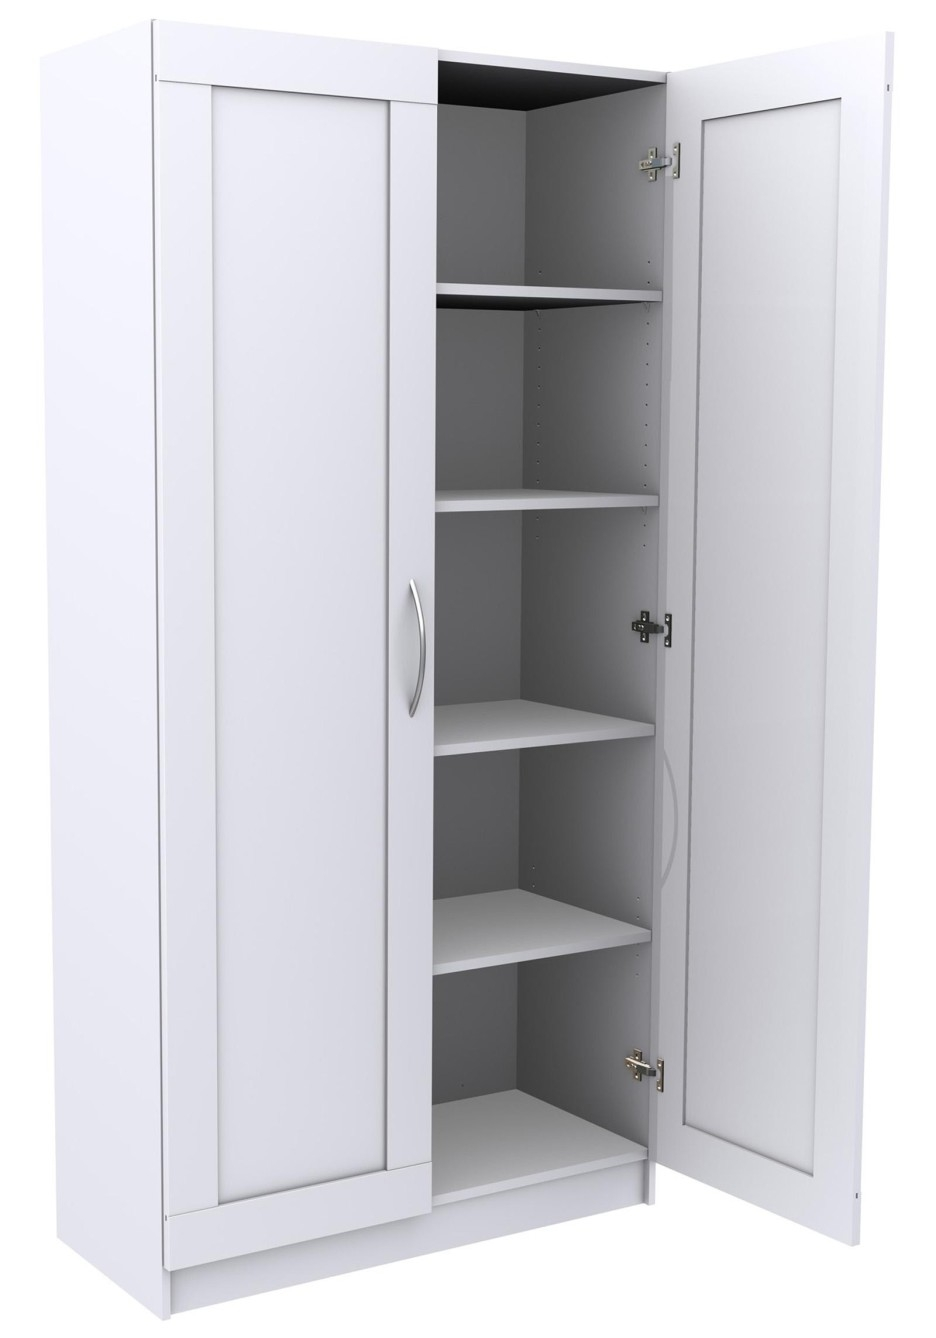 Permalink to Large White Storage Cabinet With Doors